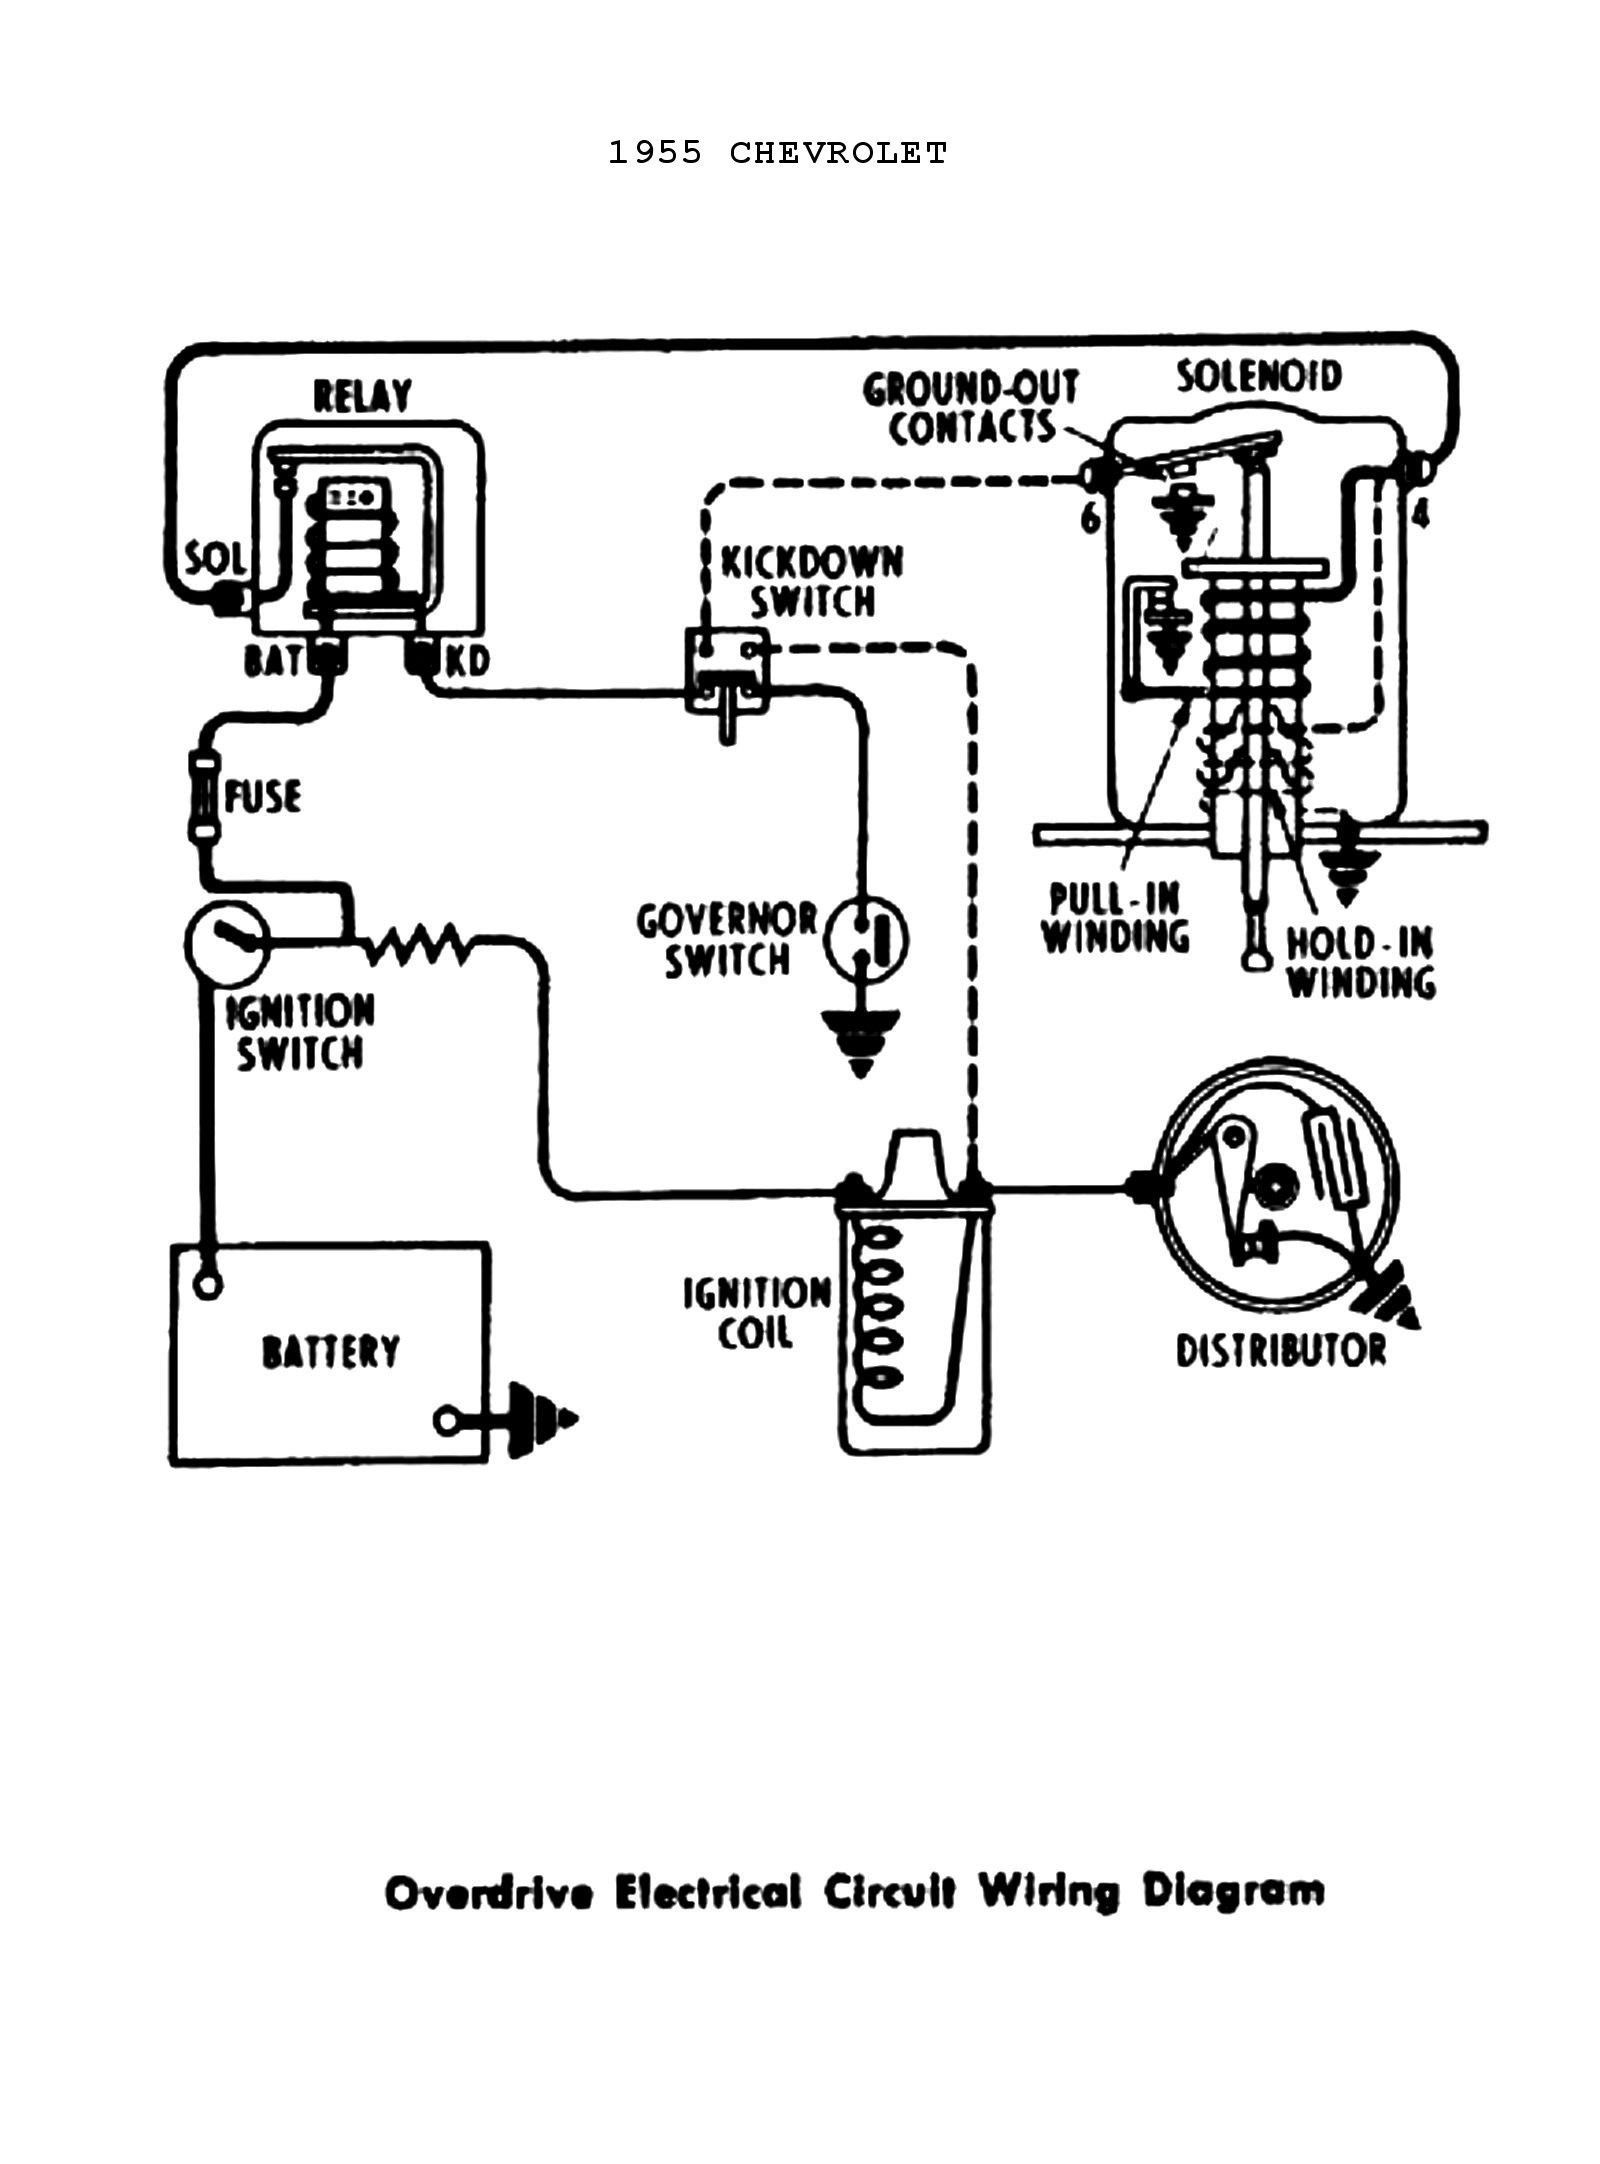 1996 Chevy Astro Ignition Wiring Diagram Free Download